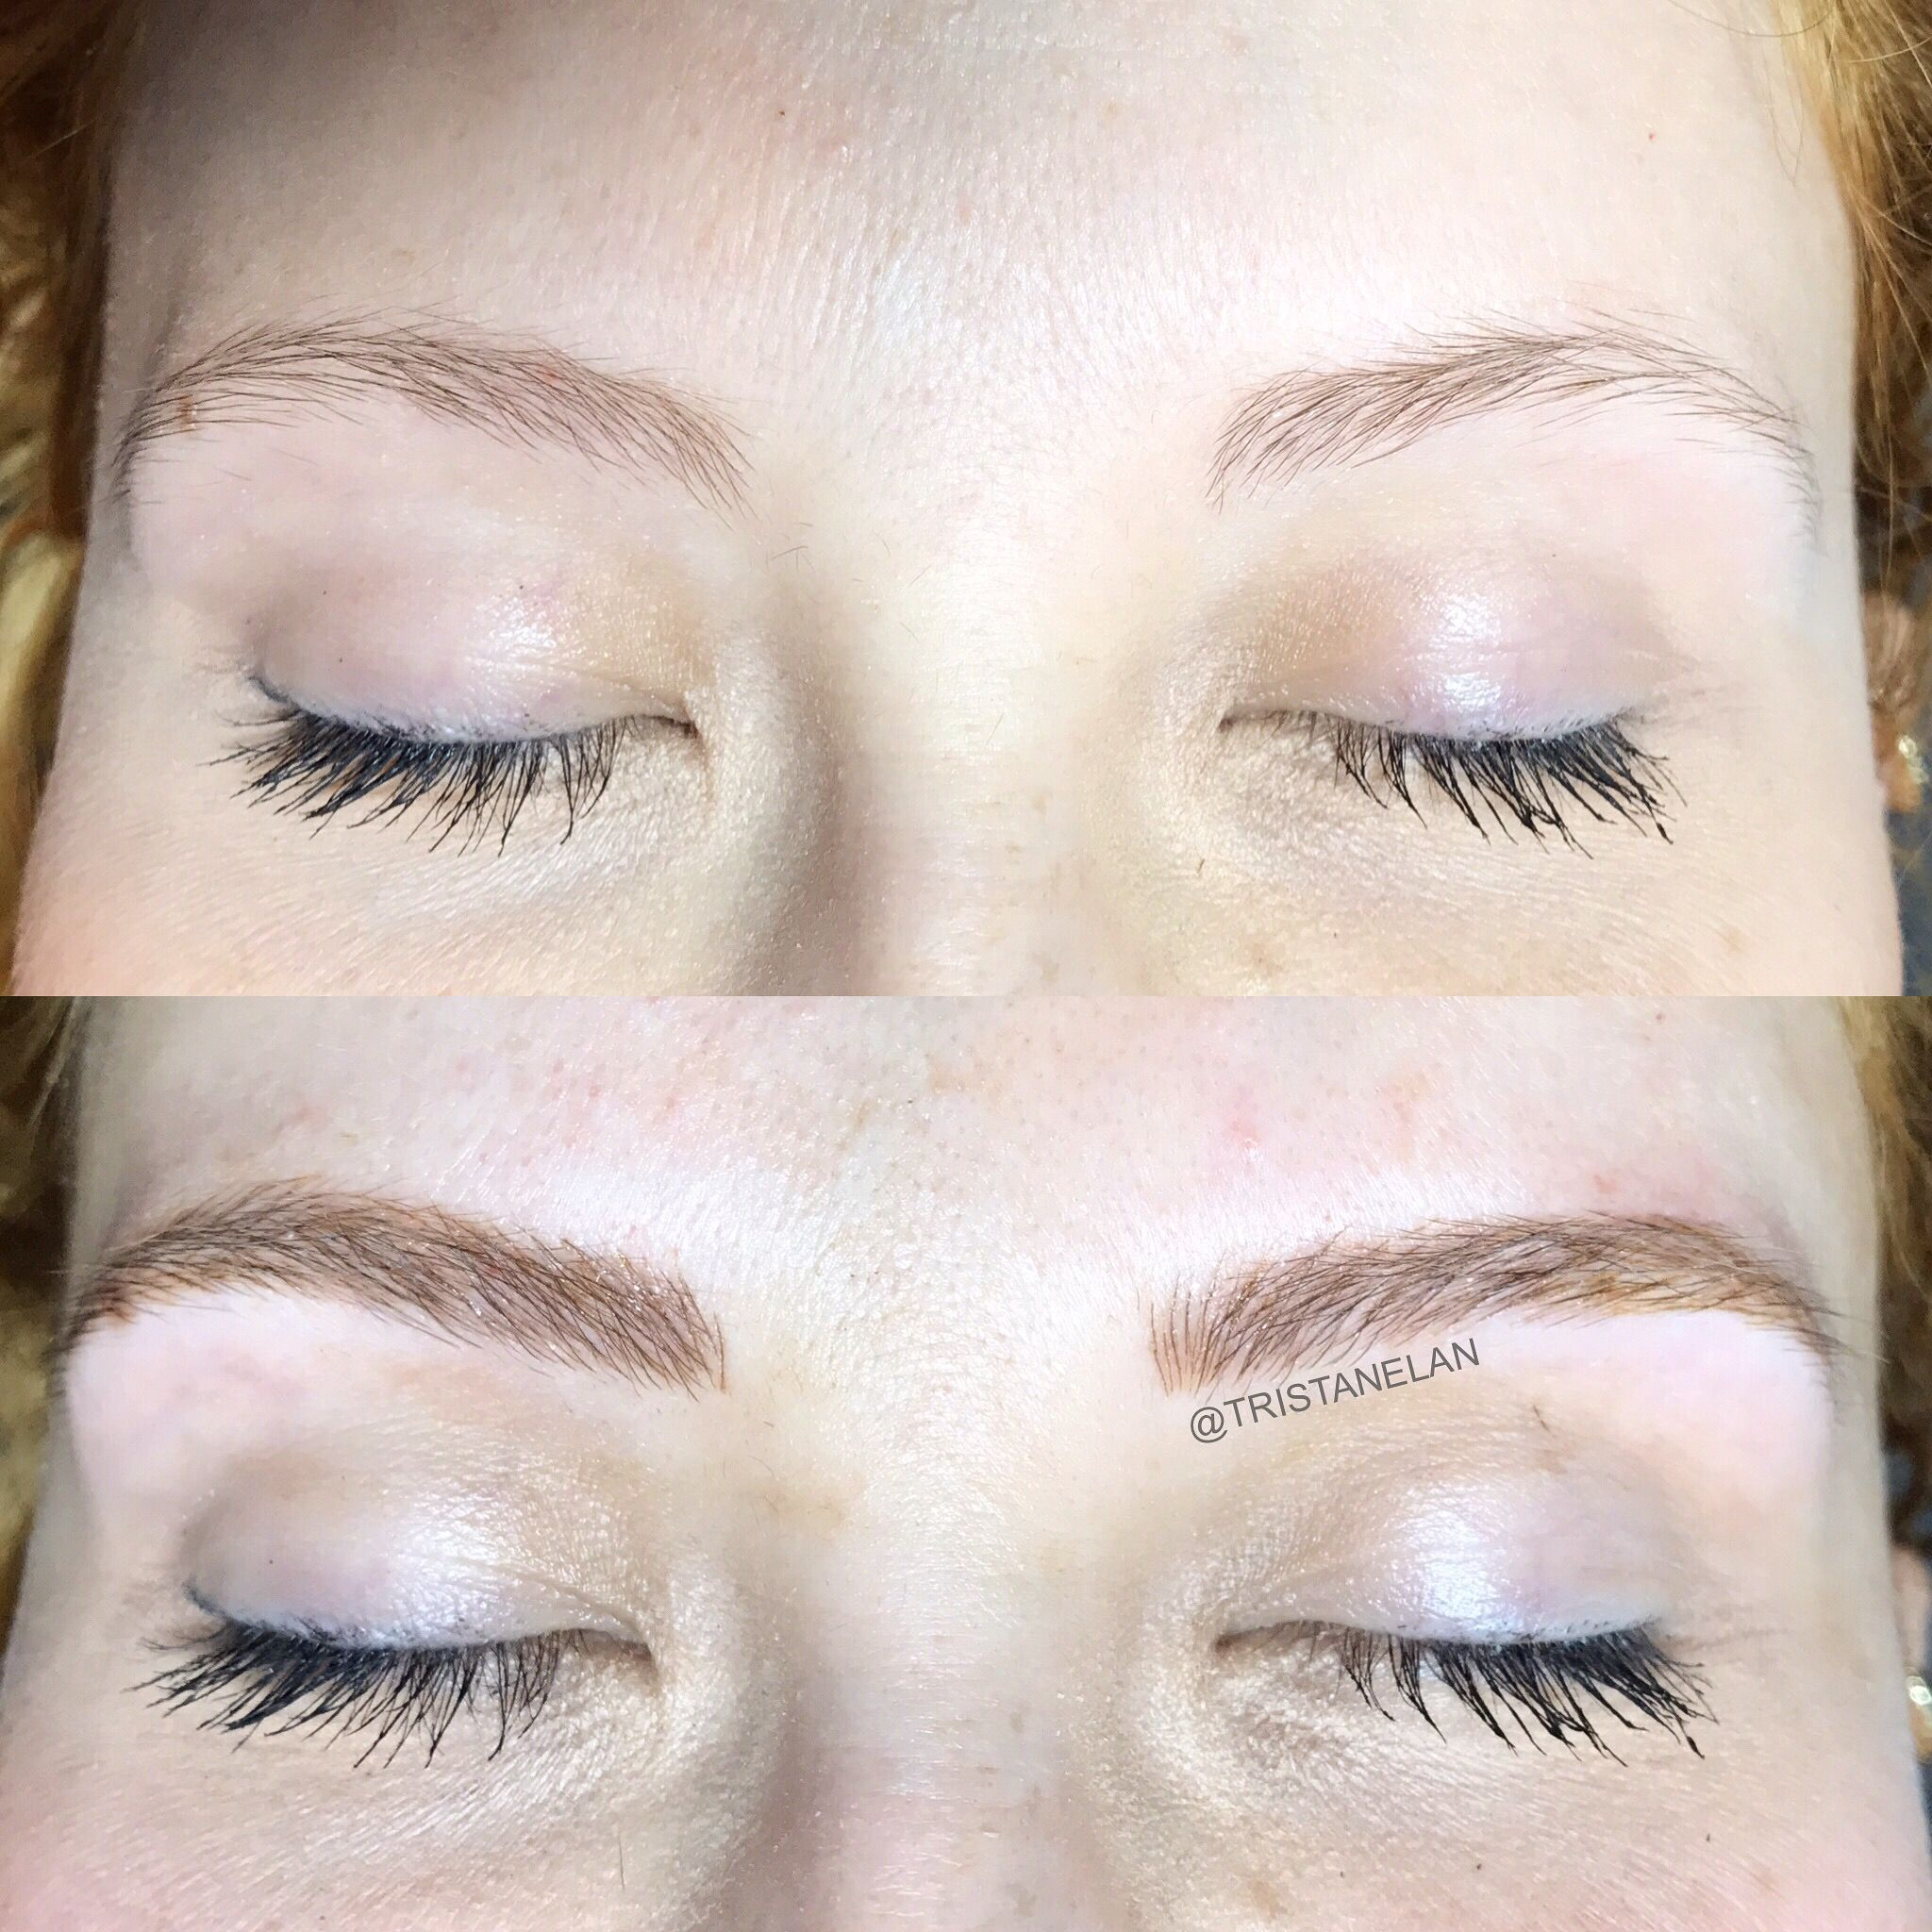 Microblading cosmetic tattoo before and after